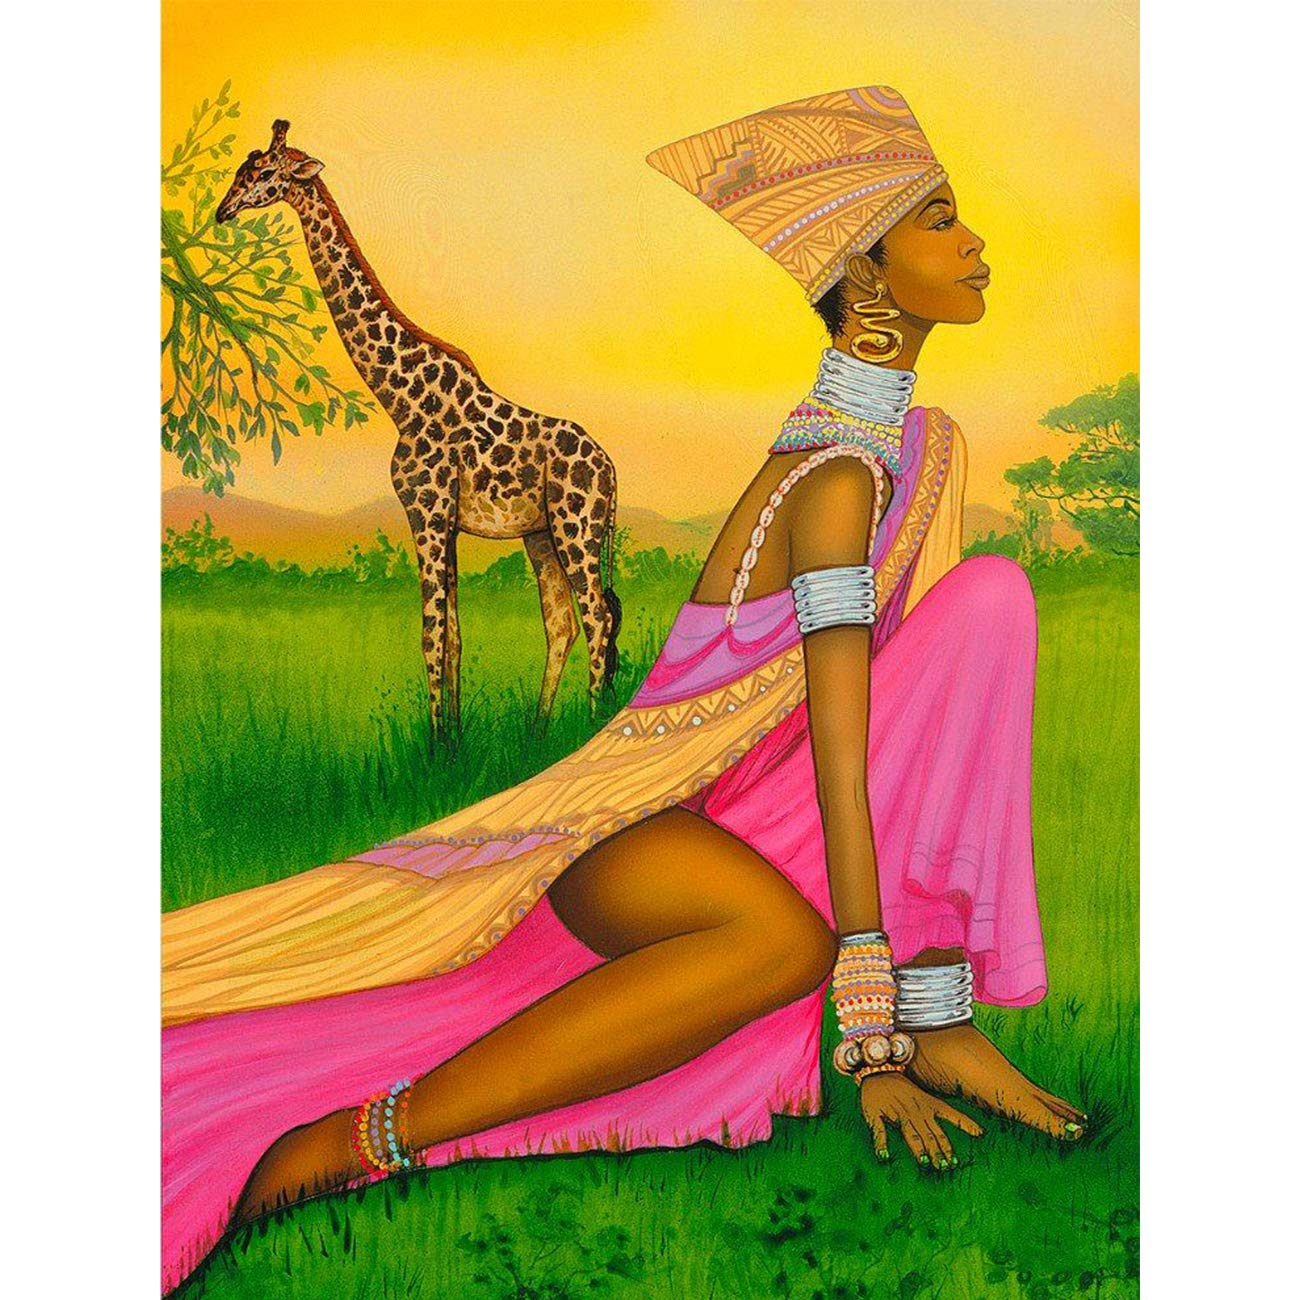 Diamond Painting Grass African Woman and Giraffe Full Drill by Number Kits, SKRYUIE DIY Rhinestone Pasted Paint with Diamond Set Arts Craft Decorations (12x16inch)